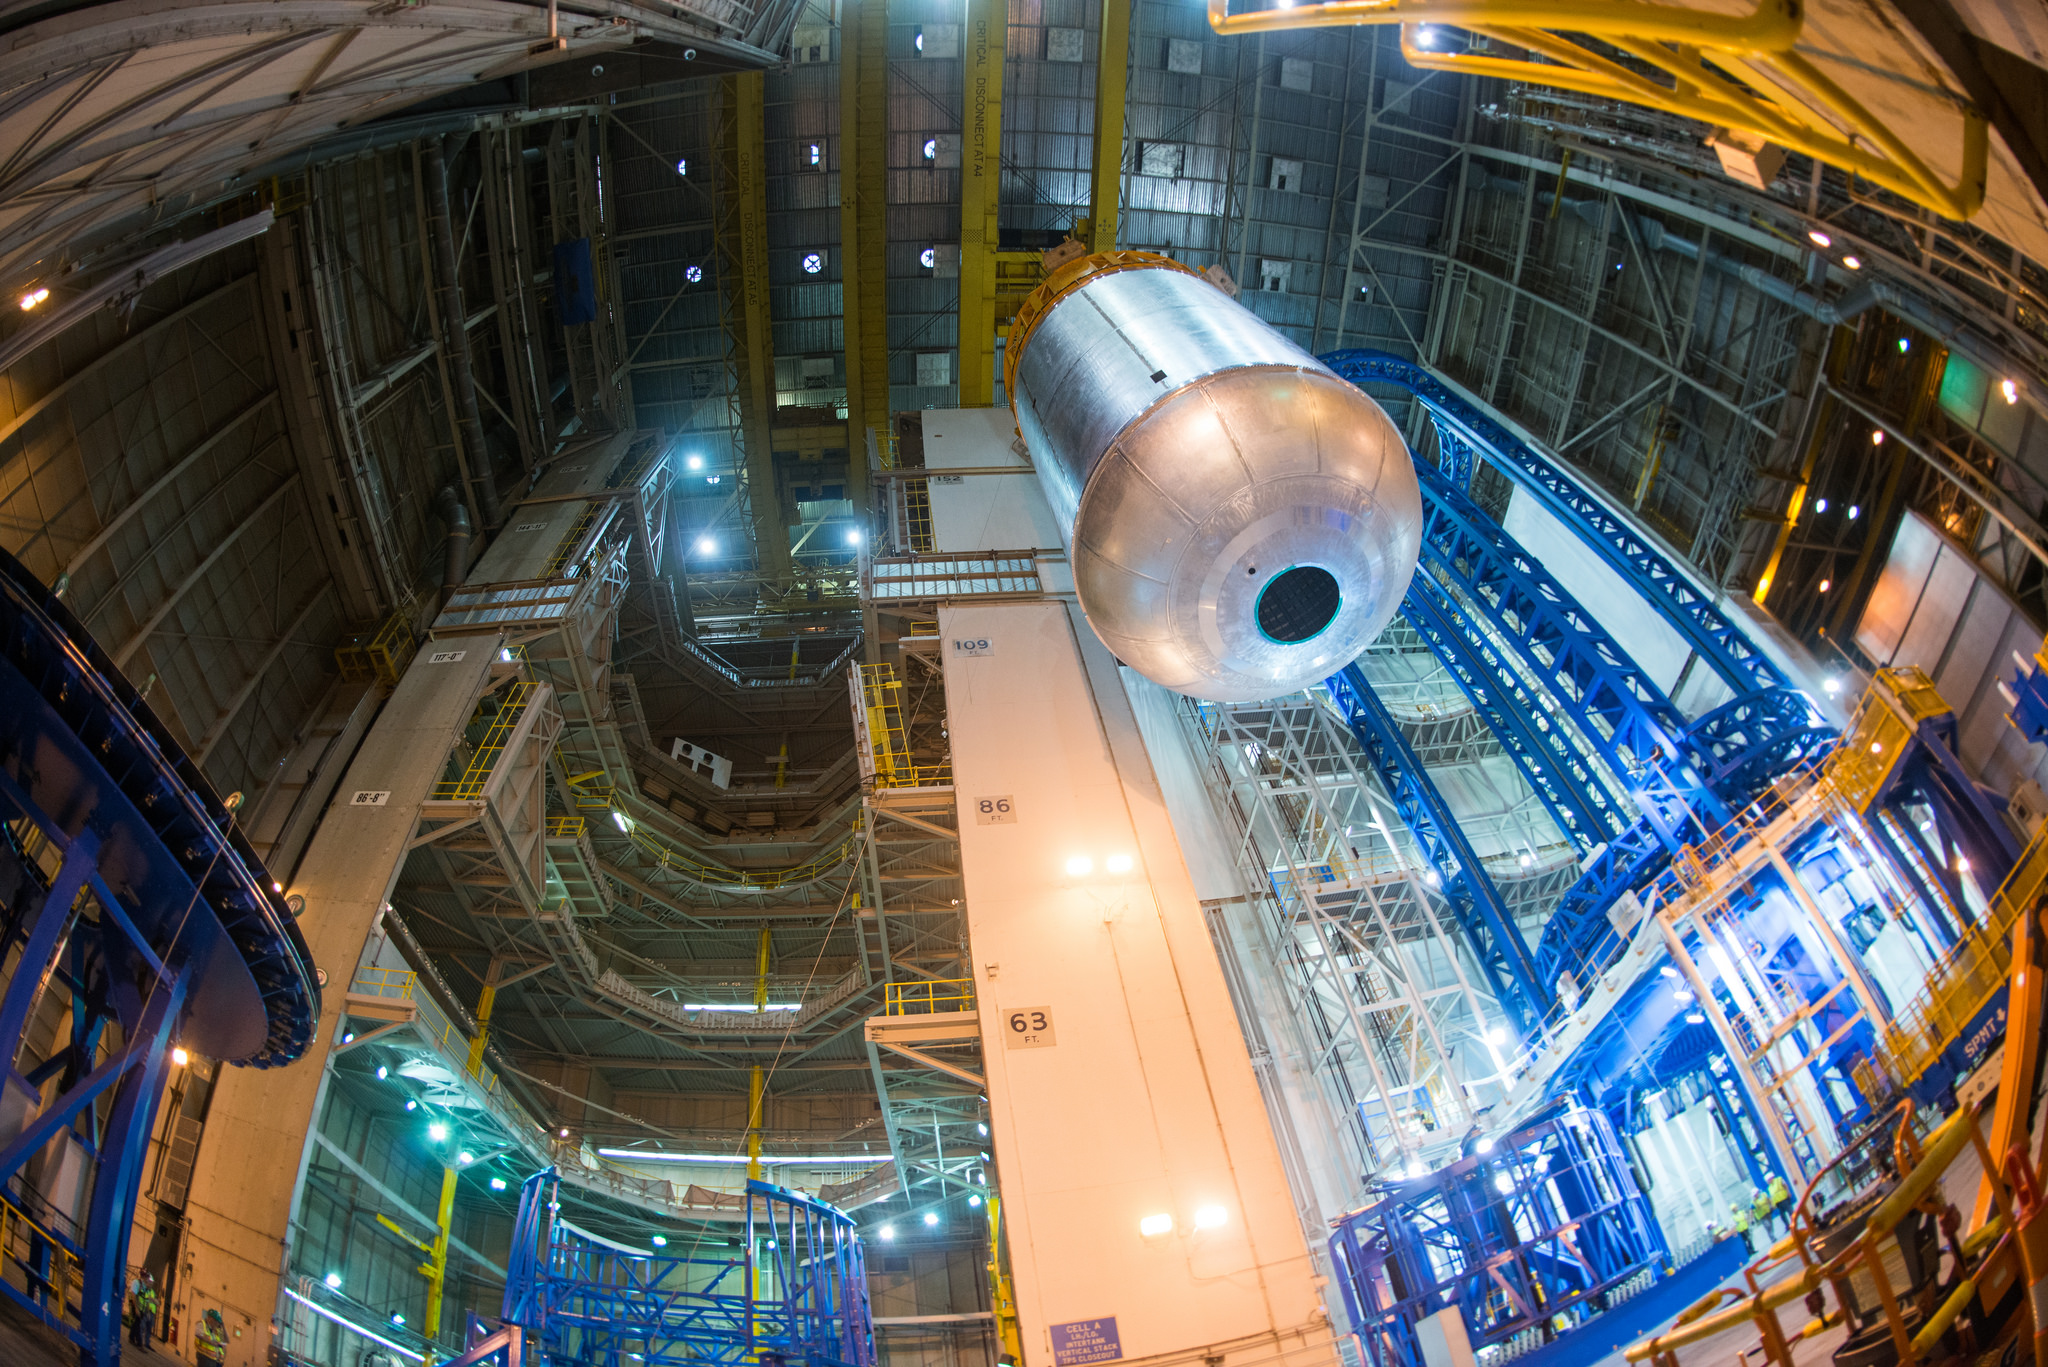 NASA is making progress on building components of its Space Launch System rocket. Here, it has completed welding of a liquid oxygen tank.